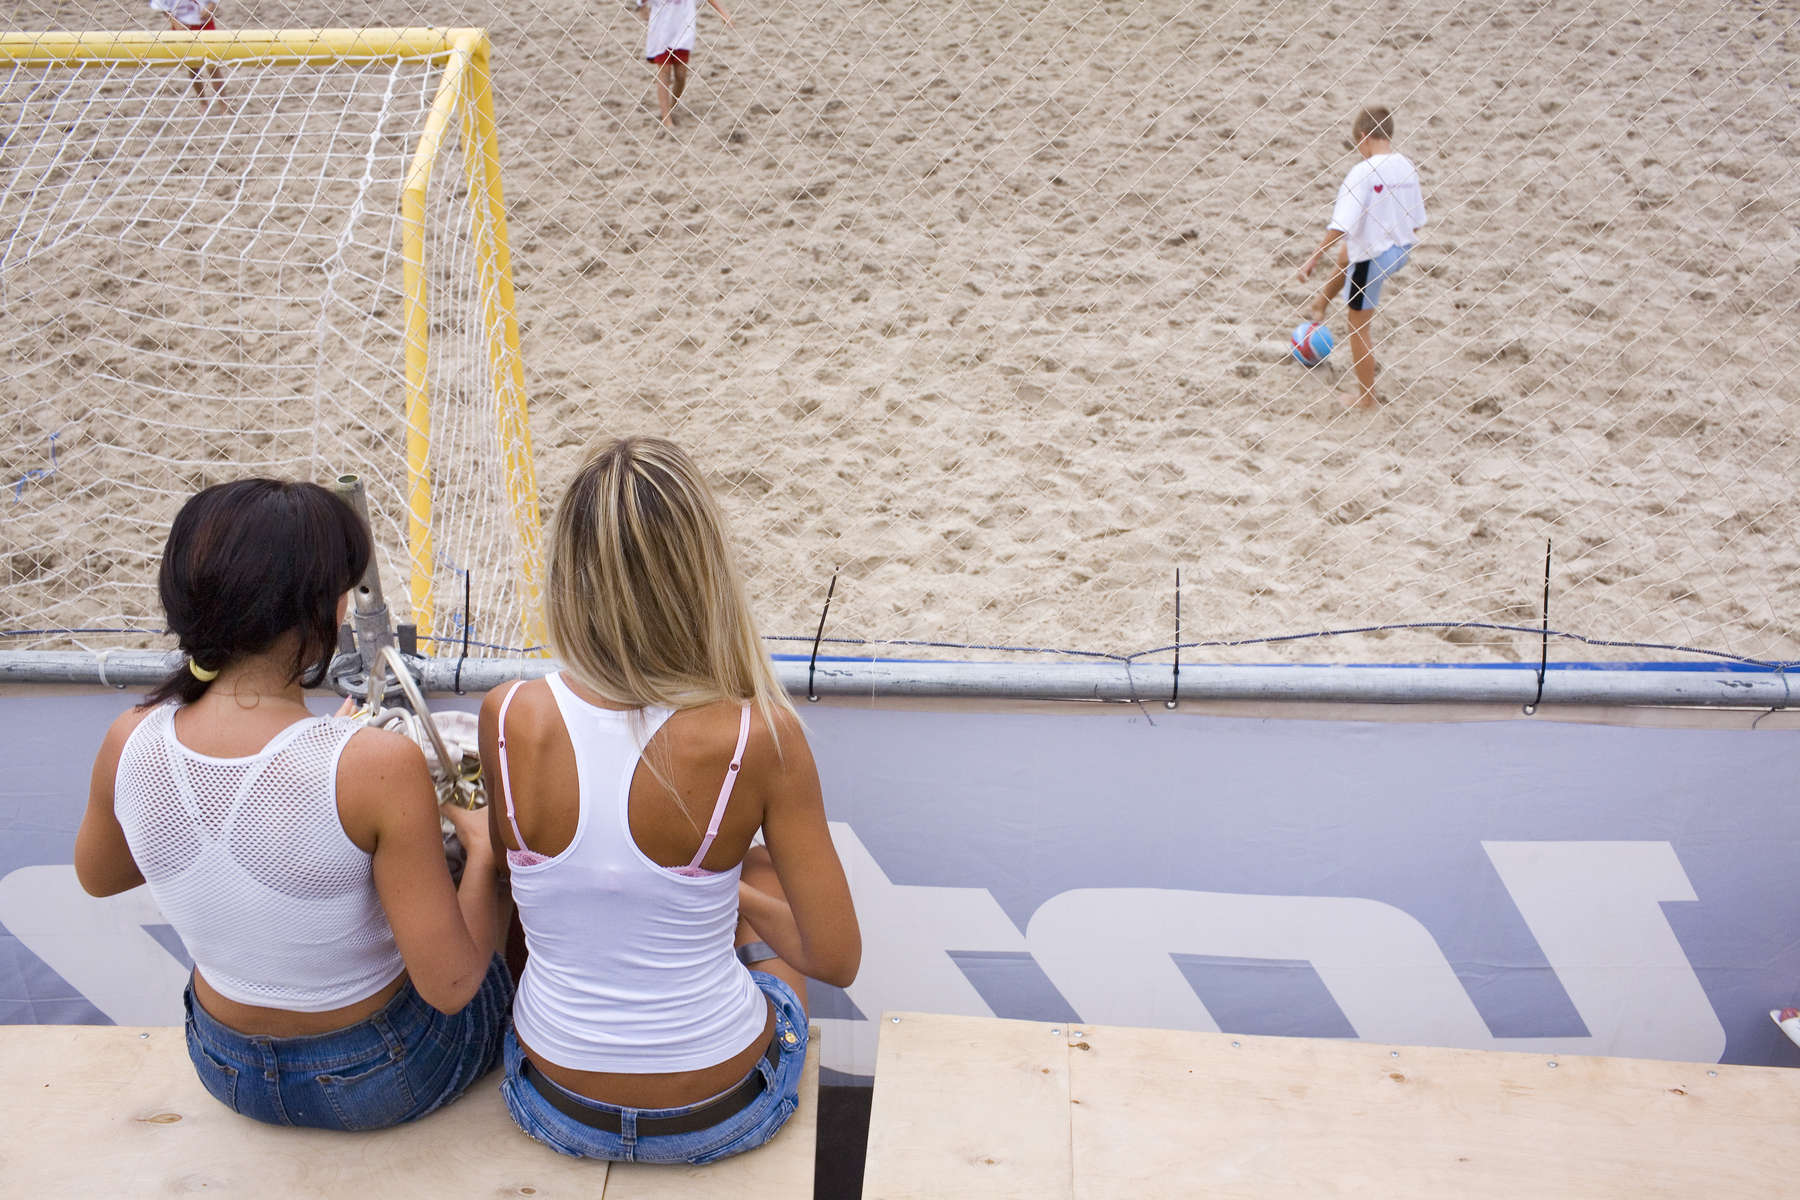 Two beautiful young Ukranian women watch a beach soccer tournament in the capital Kiev. The popularity of beach soccer in the Ukraine has exploded. The national team have become a major force in the game. Not known for it beaches, the Ukraine won their first international title at the May 2007 Euro Beach cup in Spain beating favourites France.In disaster areas, war zones and urban wastelands, football keeps humanity alive. It brings nations together and promotes unity. It encourages equality and generates pride and self-belief. It has the power to heal and to help, to motivate, to give freedom to dreams and empower a generation. There are millions of people playing the game or helping it to flourish who find that football brings a positive dimension to their lives.Away from the billionaire owned clubs with it's multi-million dollar players, Football's Hidden Story is a series of emotive human interest photographs showing the positive impact football has had at grassroot level on individuals and communities all around the world.